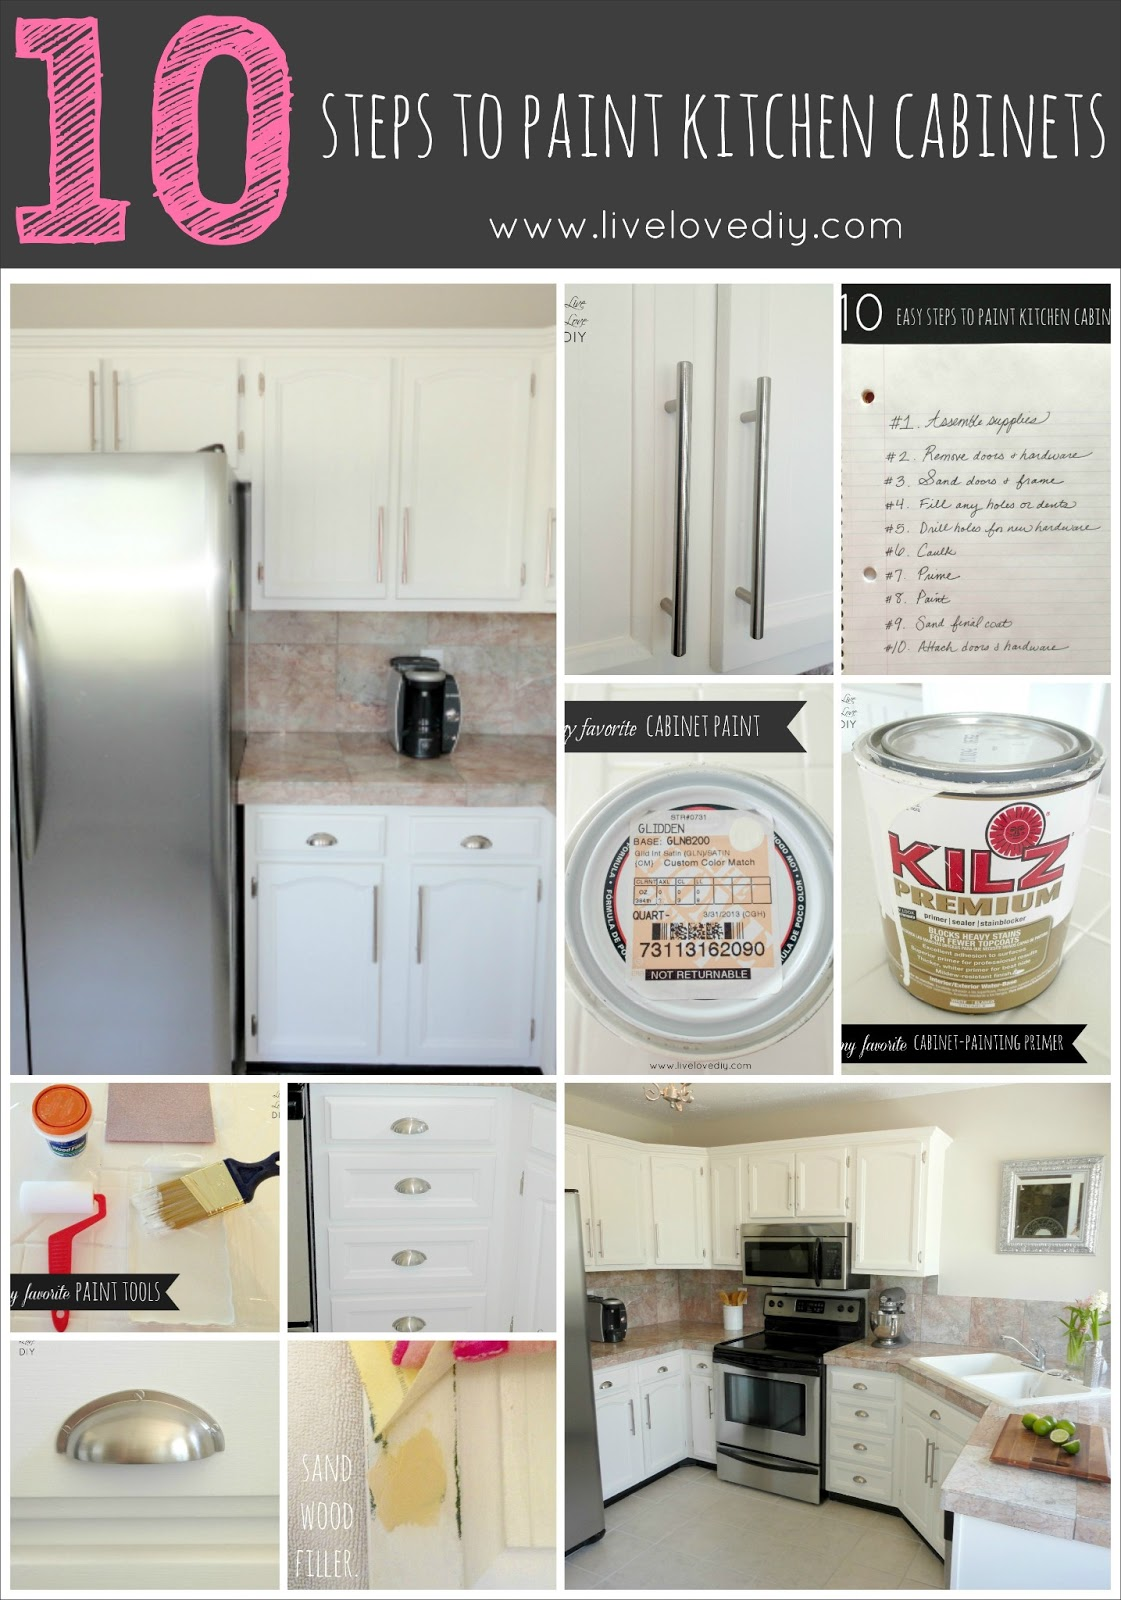 10 easy steps to paint kitchen cabinets redo kitchen cabinets How To Paint Kitchen Cabinets in 10 Easy Steps